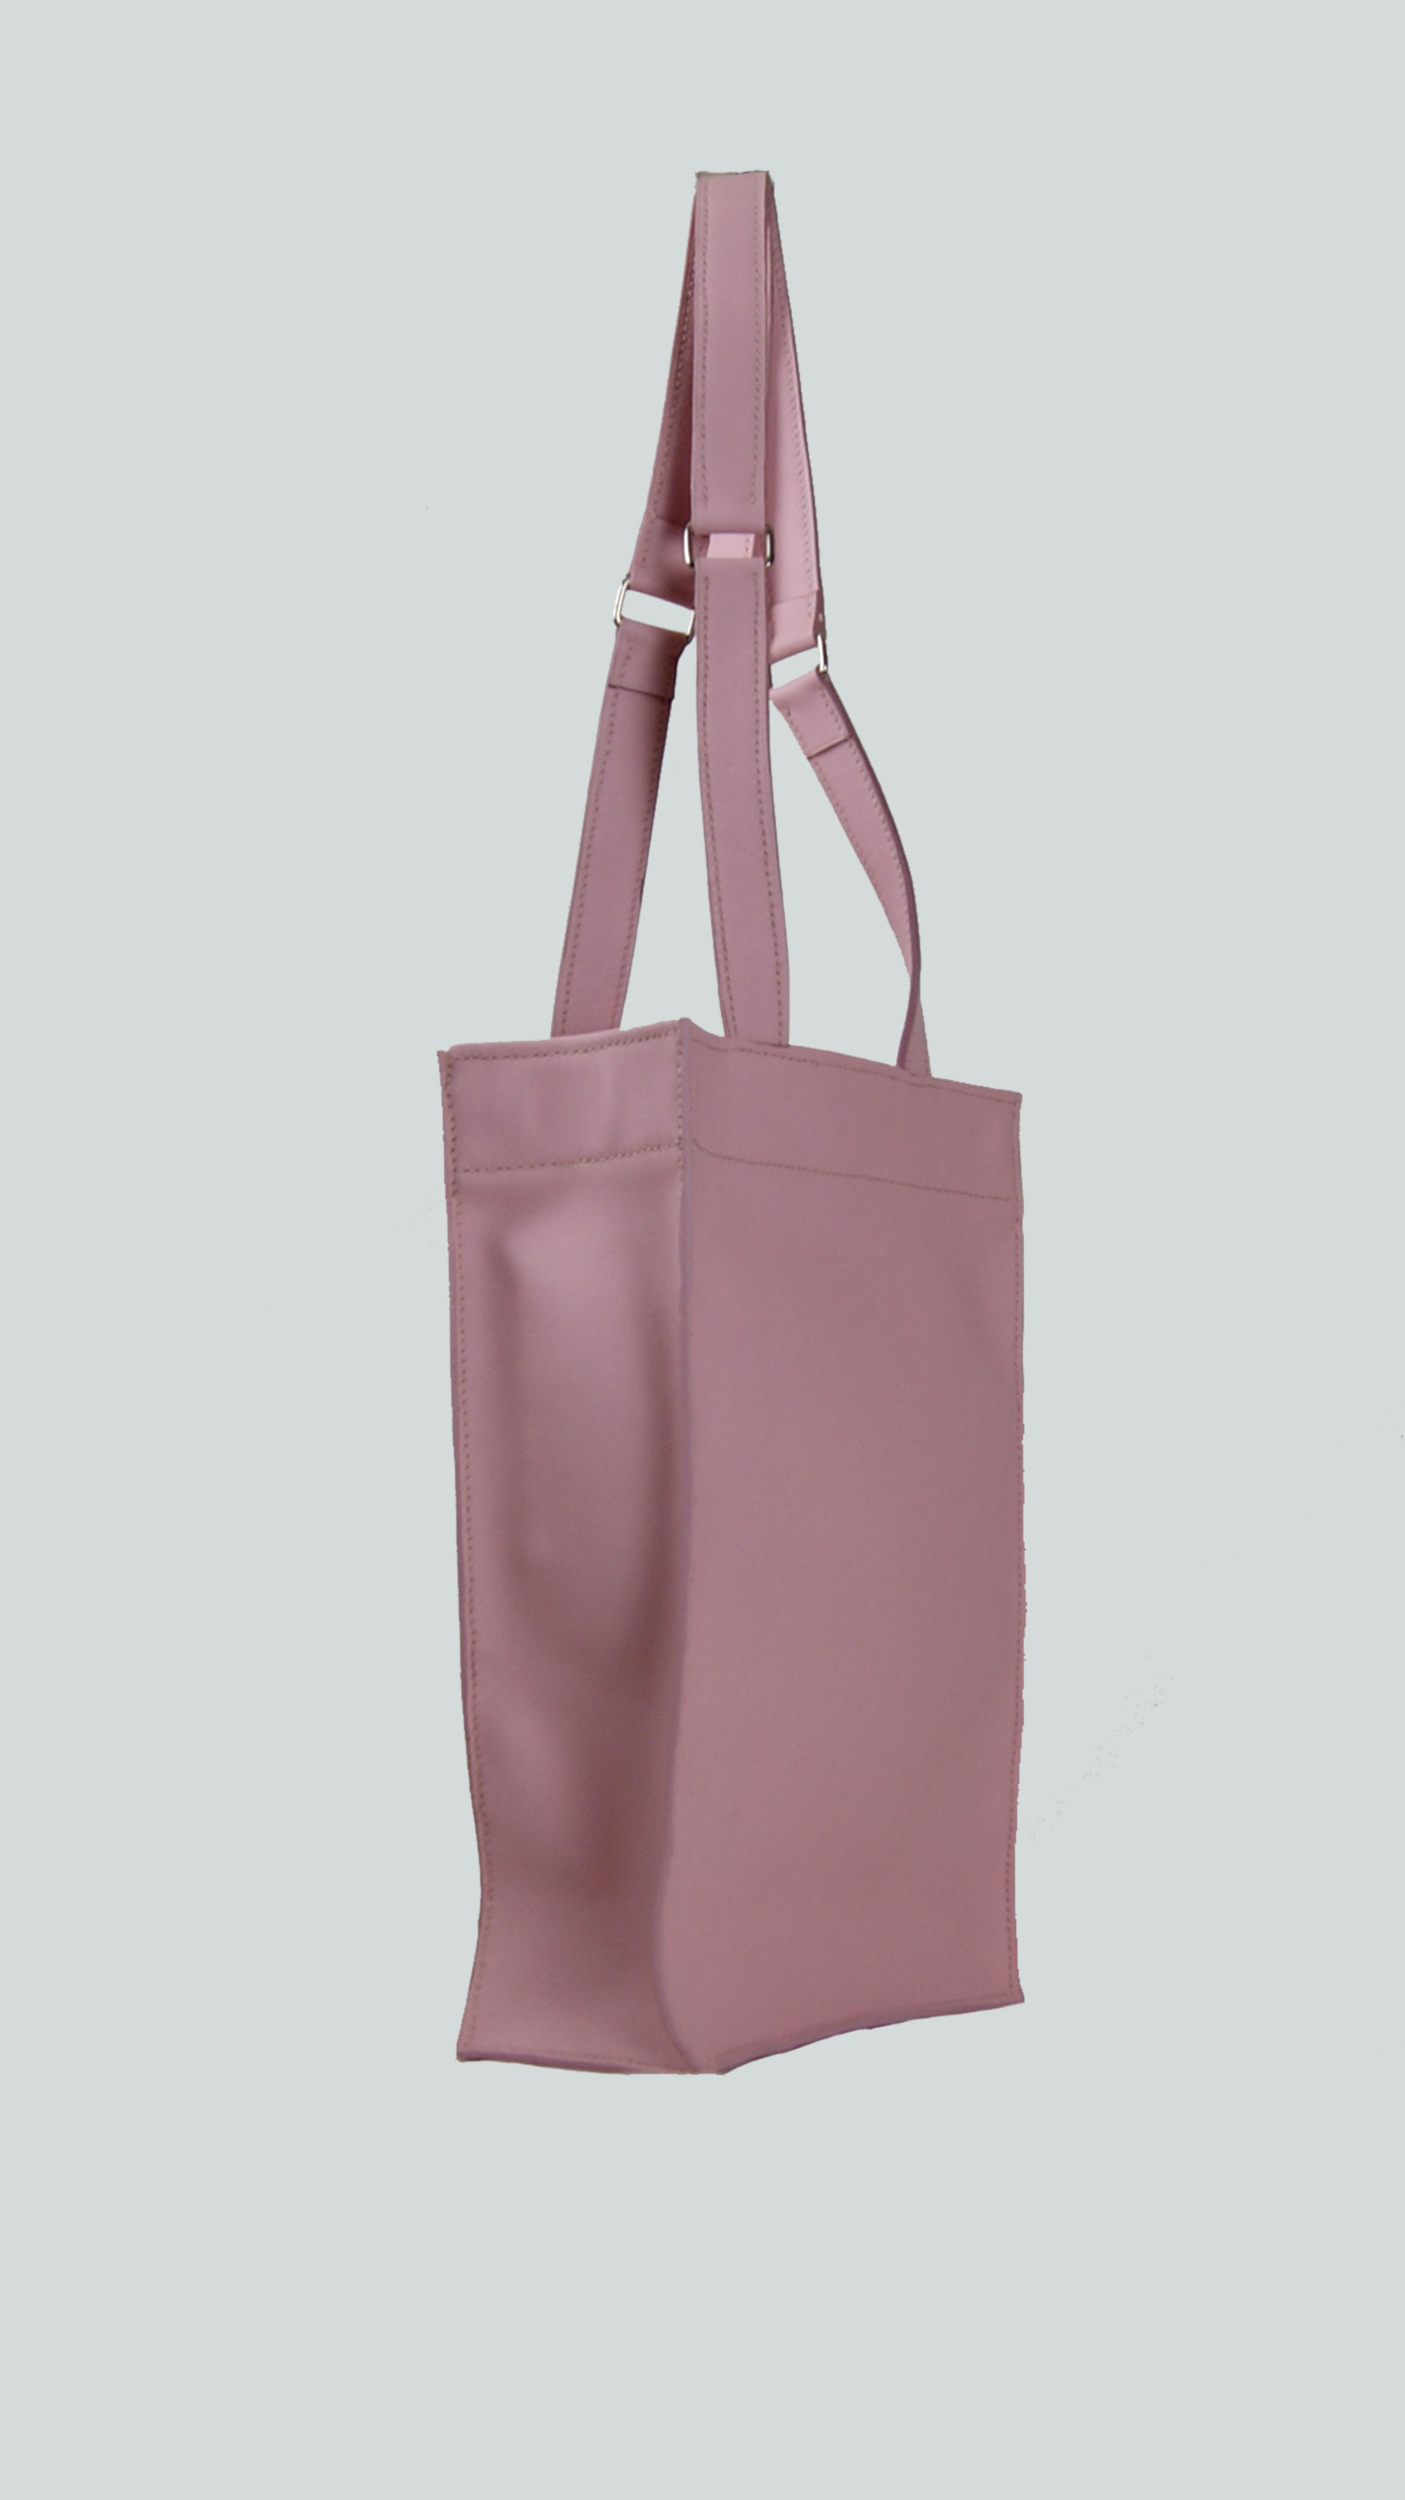 KAMET 2.0 sac shopping en cuir de veau rose